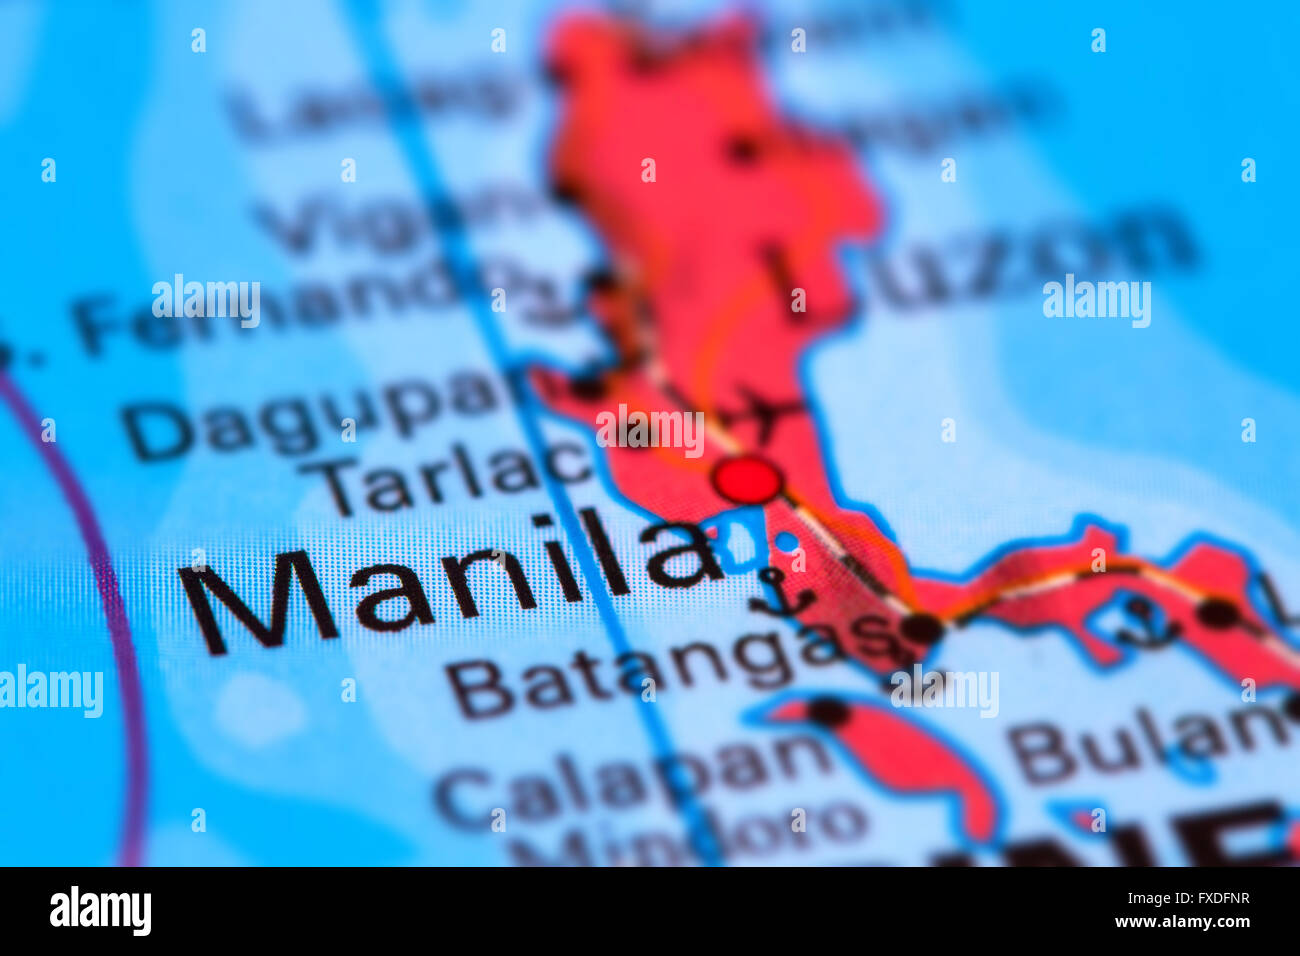 Manila capital city of the philippines on the world map stock photo manila capital city of the philippines on the world map gumiabroncs Gallery